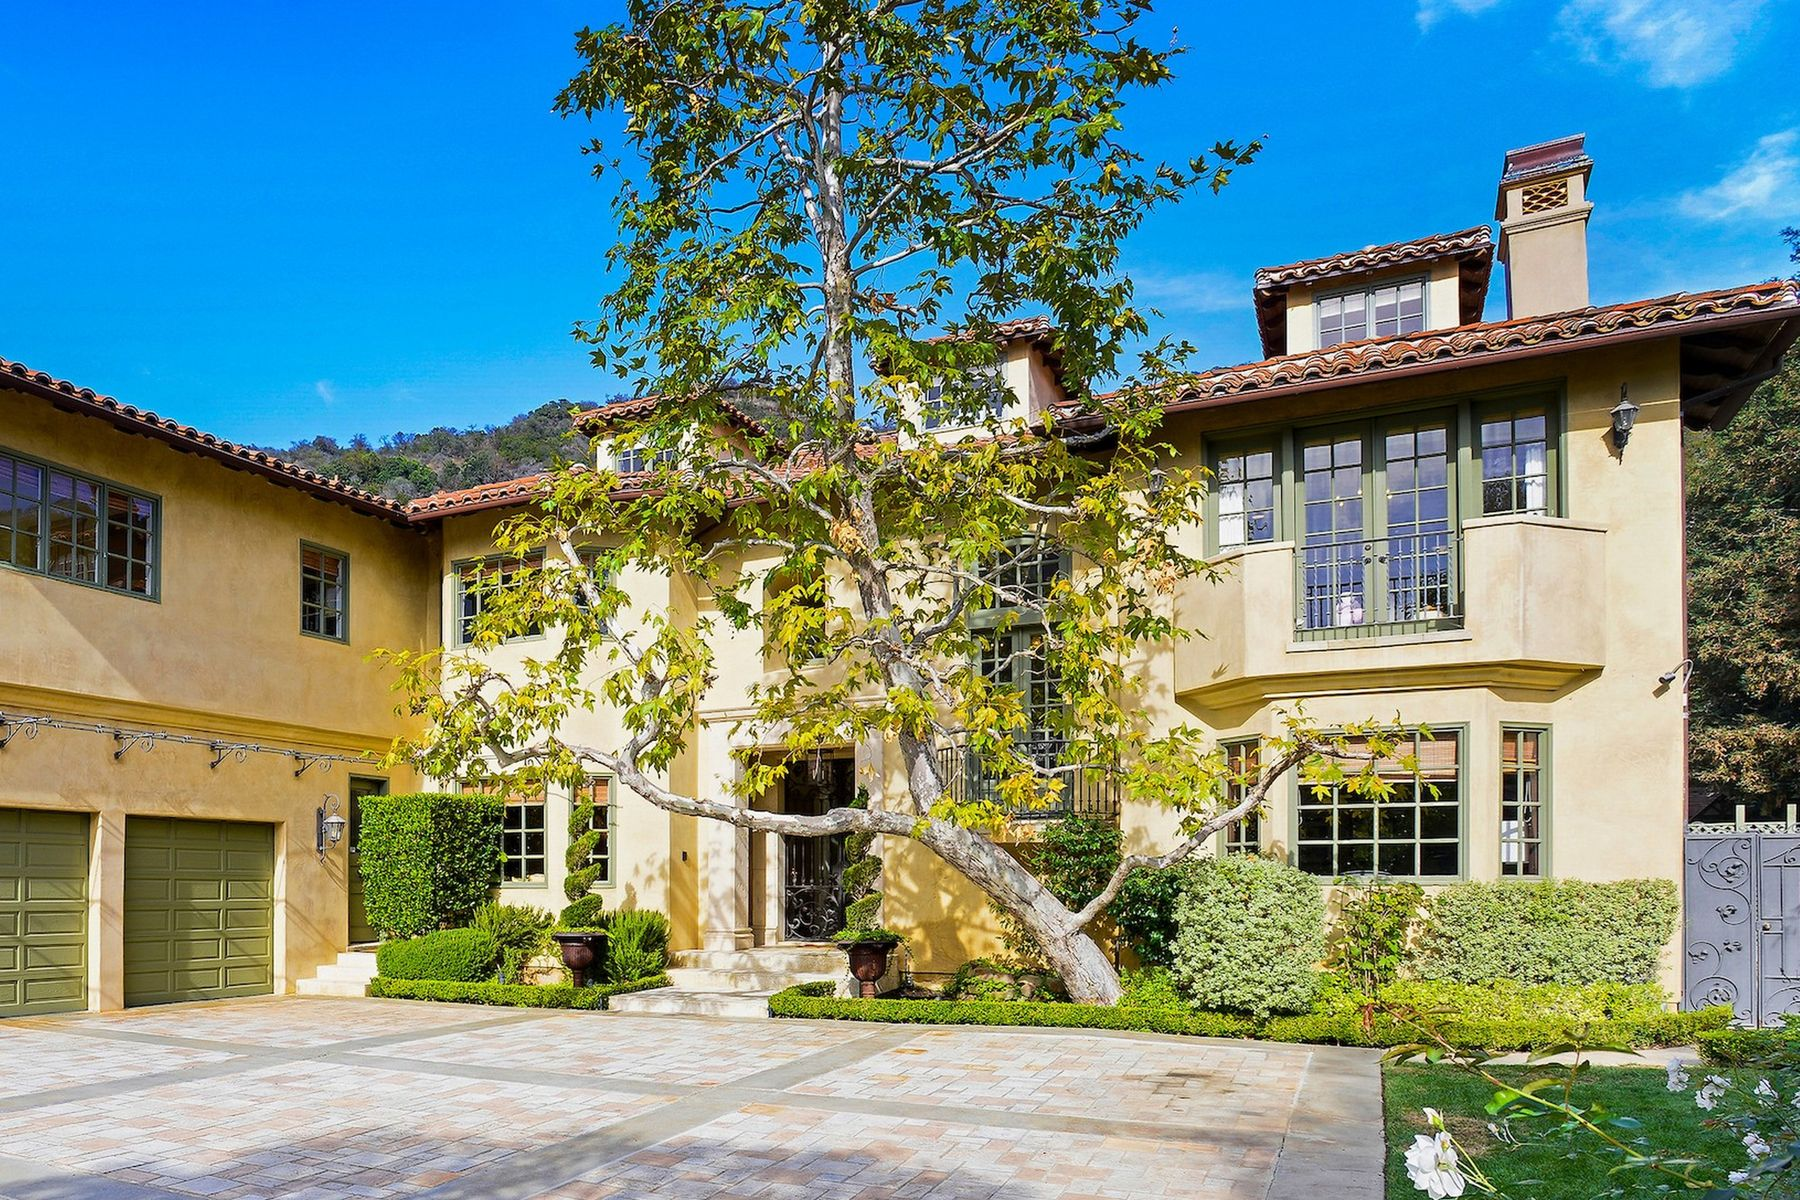 Single Family Homes for Sale at 1466 Bienveneda Avenue Pacific Palisades, California 90272 United States